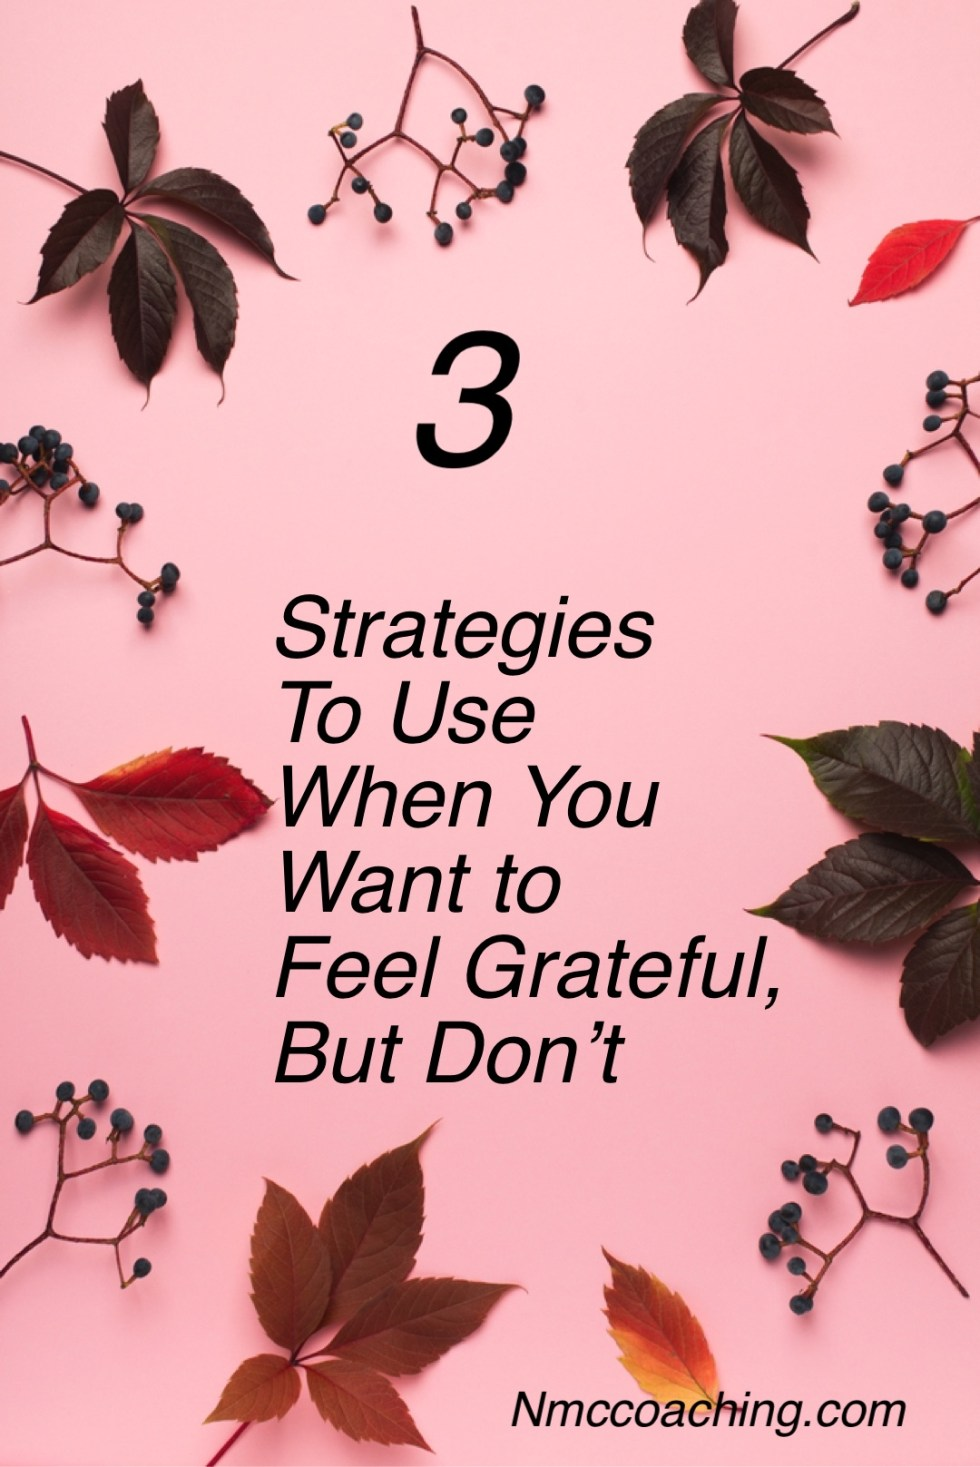 3 strategies to use when you want to feel grateful, but don't.